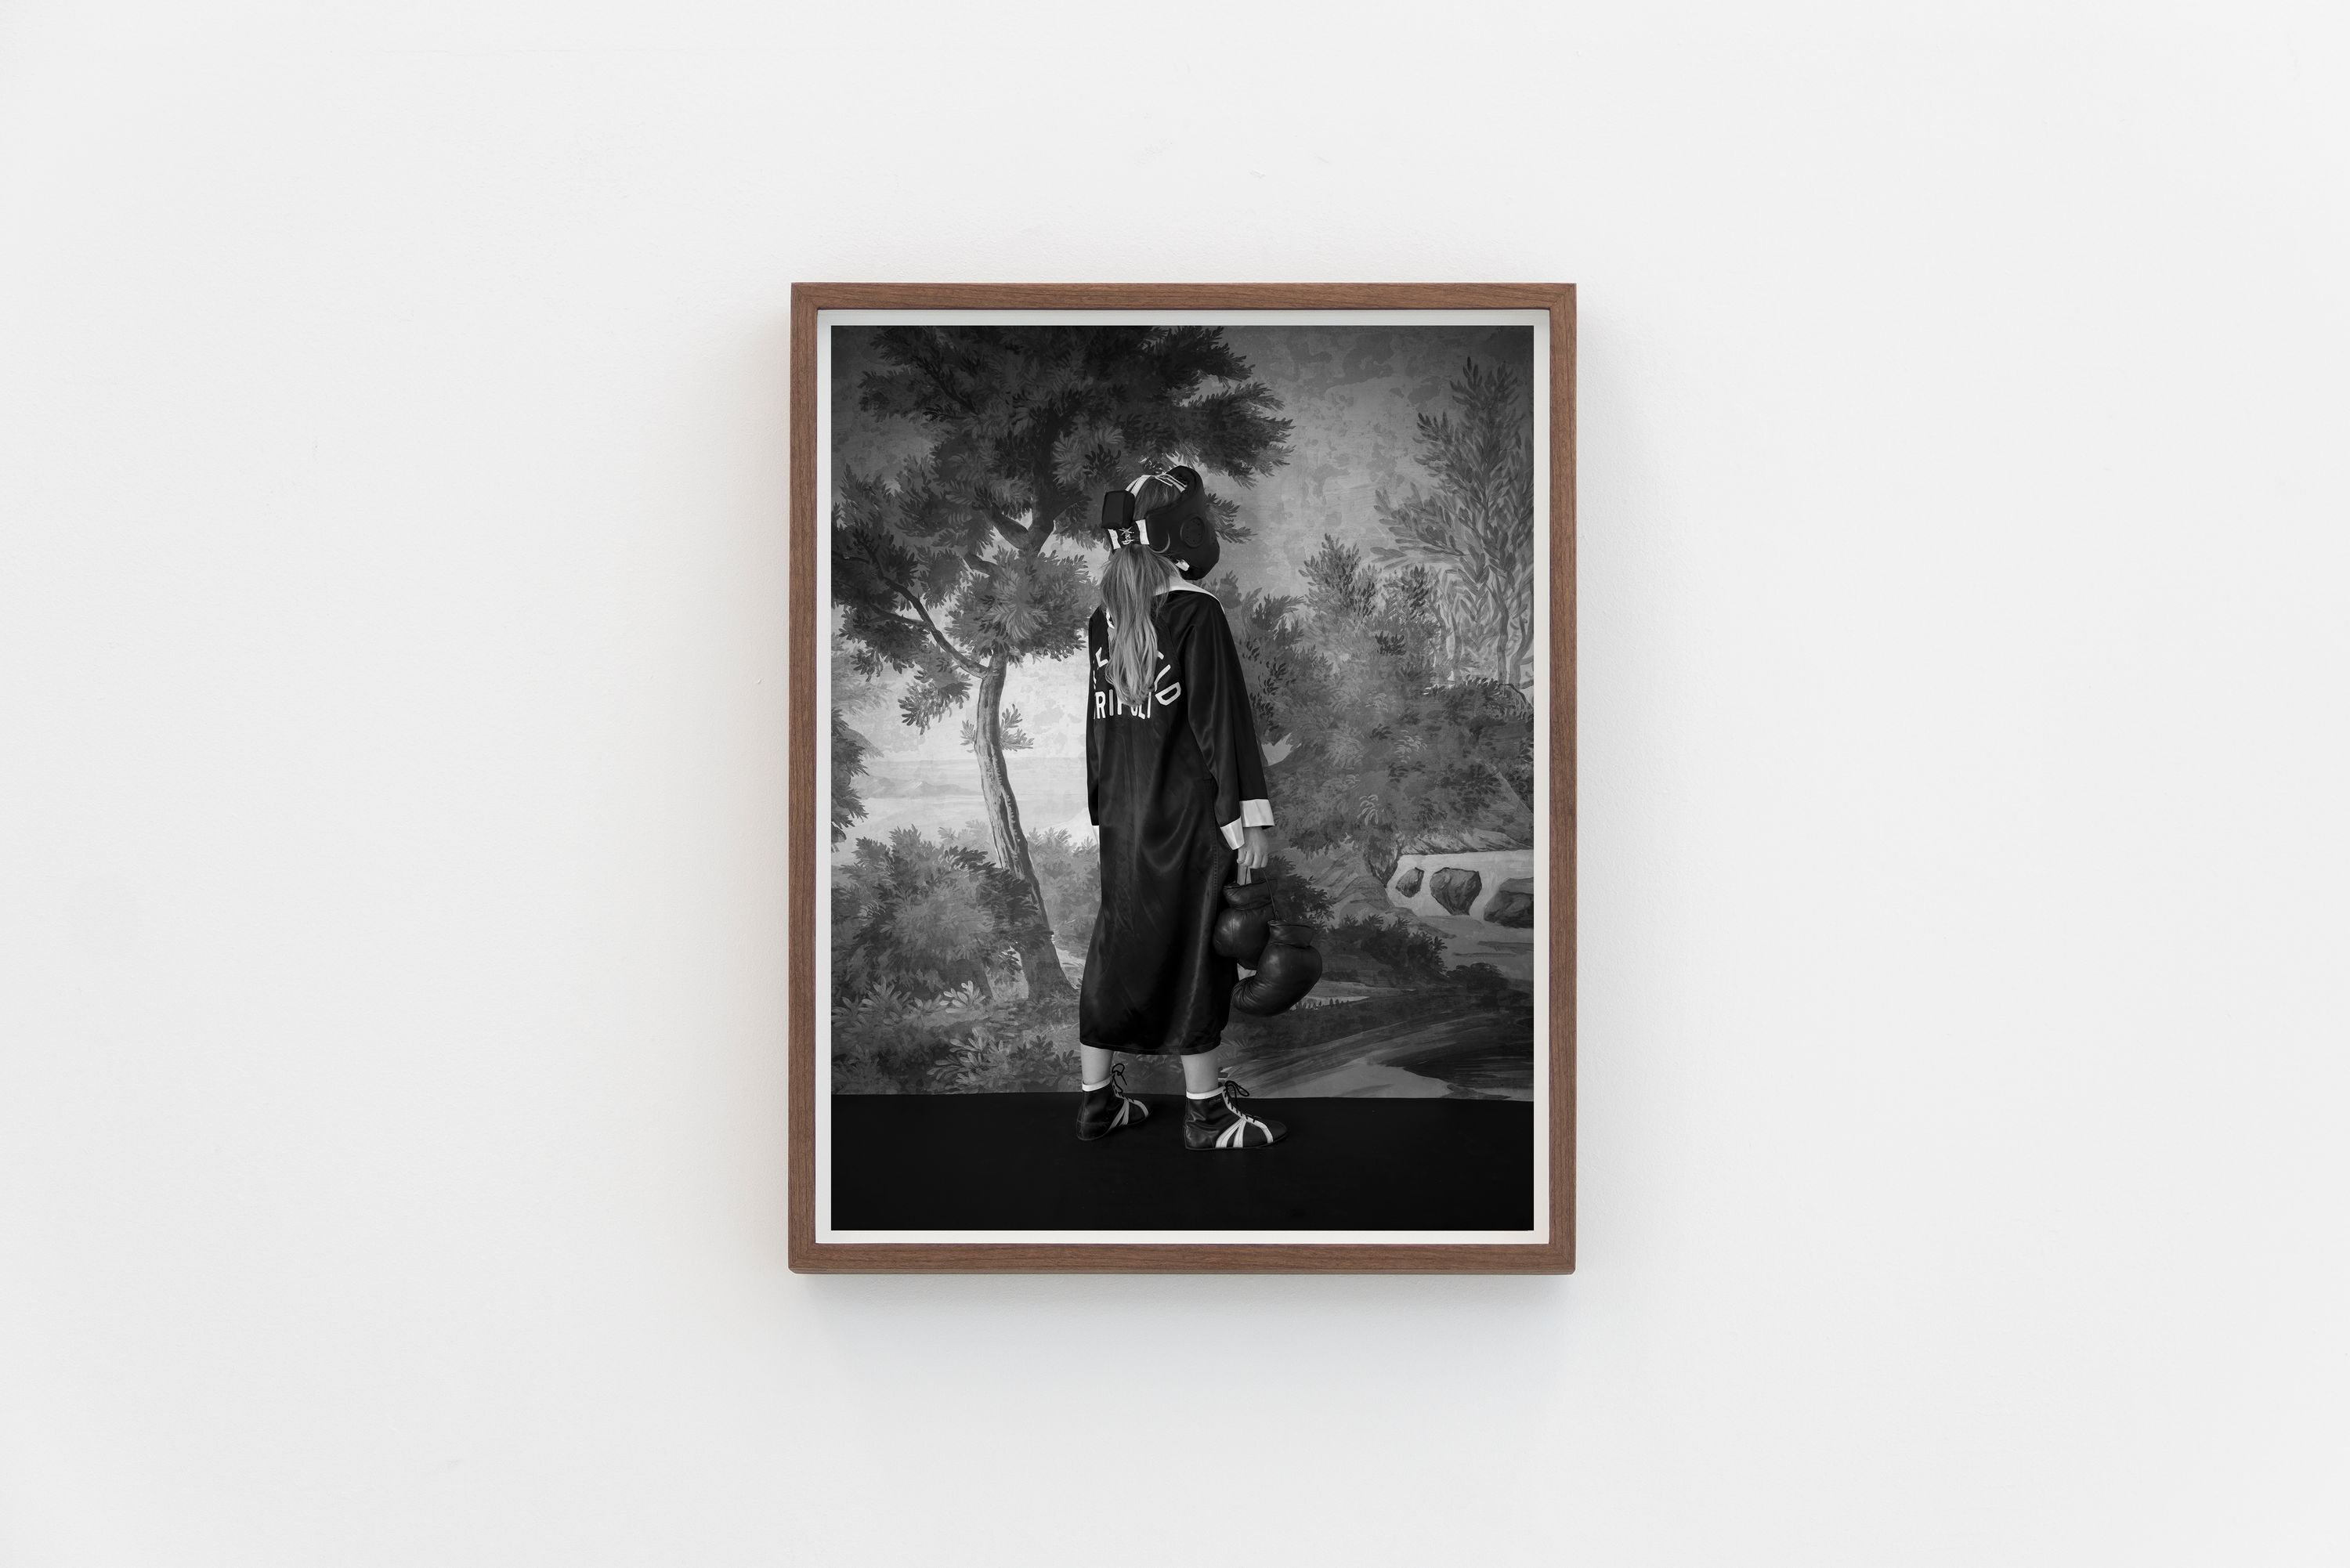 Fight Series No. 35 by Anja Niemi, The Ravestijn Gallery